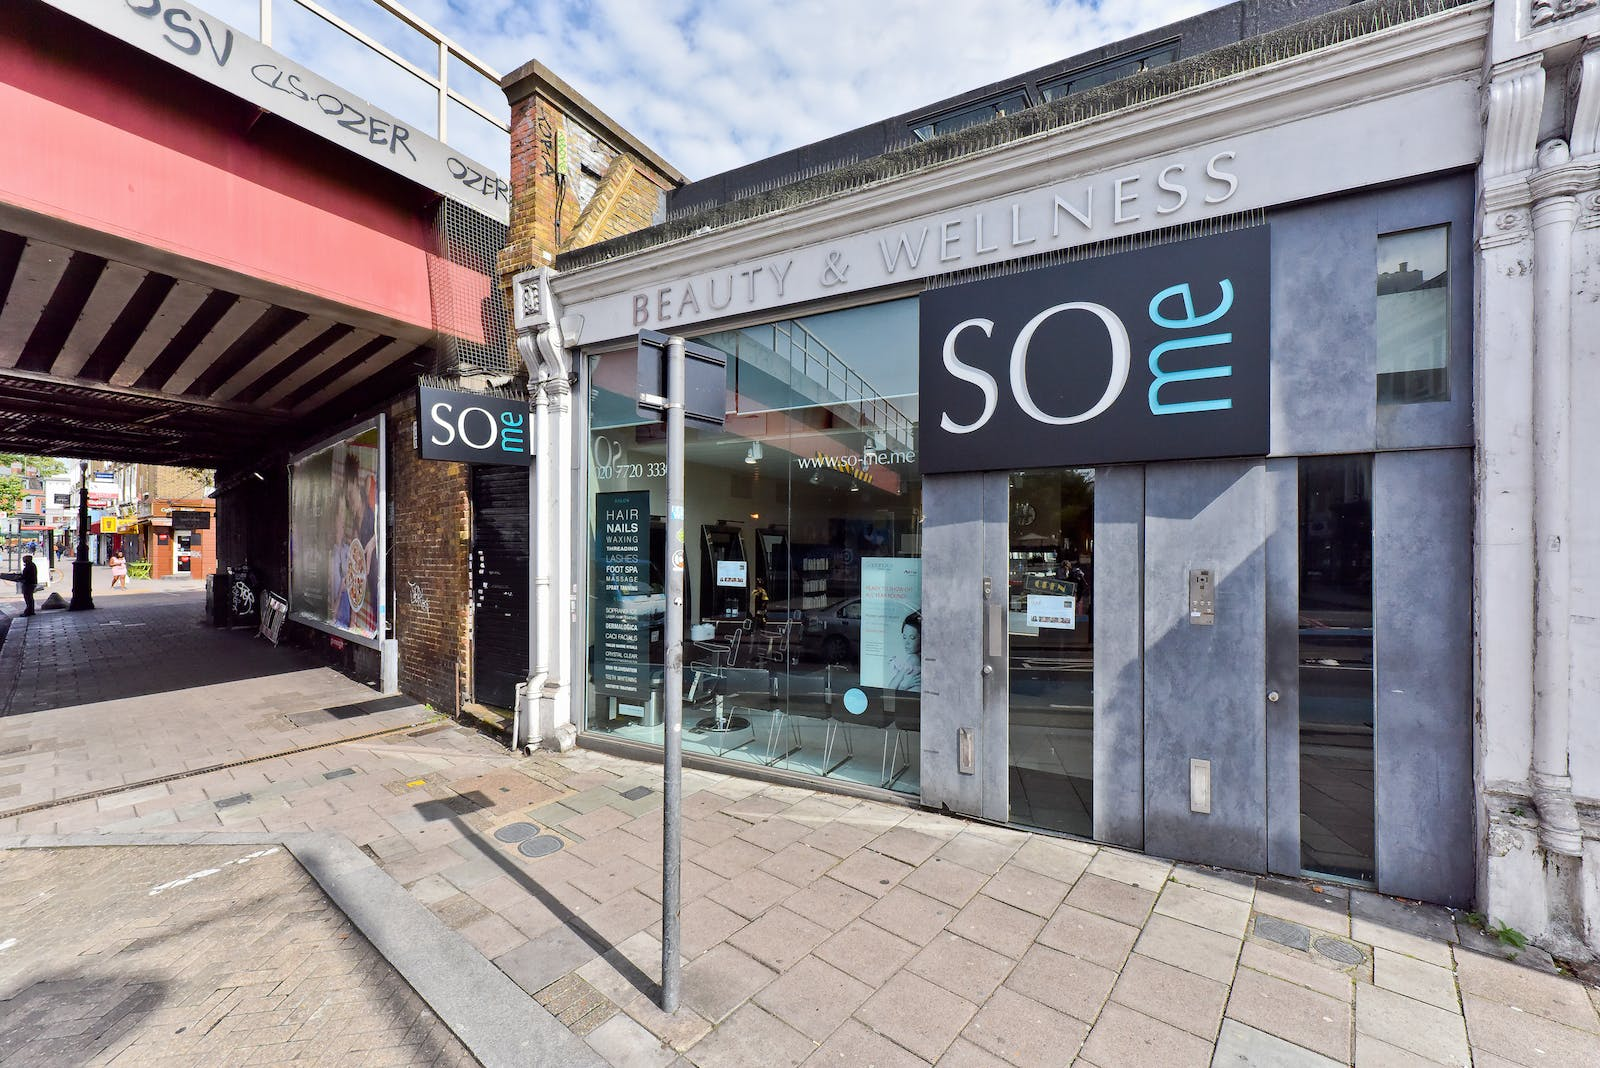 21 Clapham High Street, London, Mixed Use For Sale - 21 Clapham High Street, SW4 7TR picture No. 1